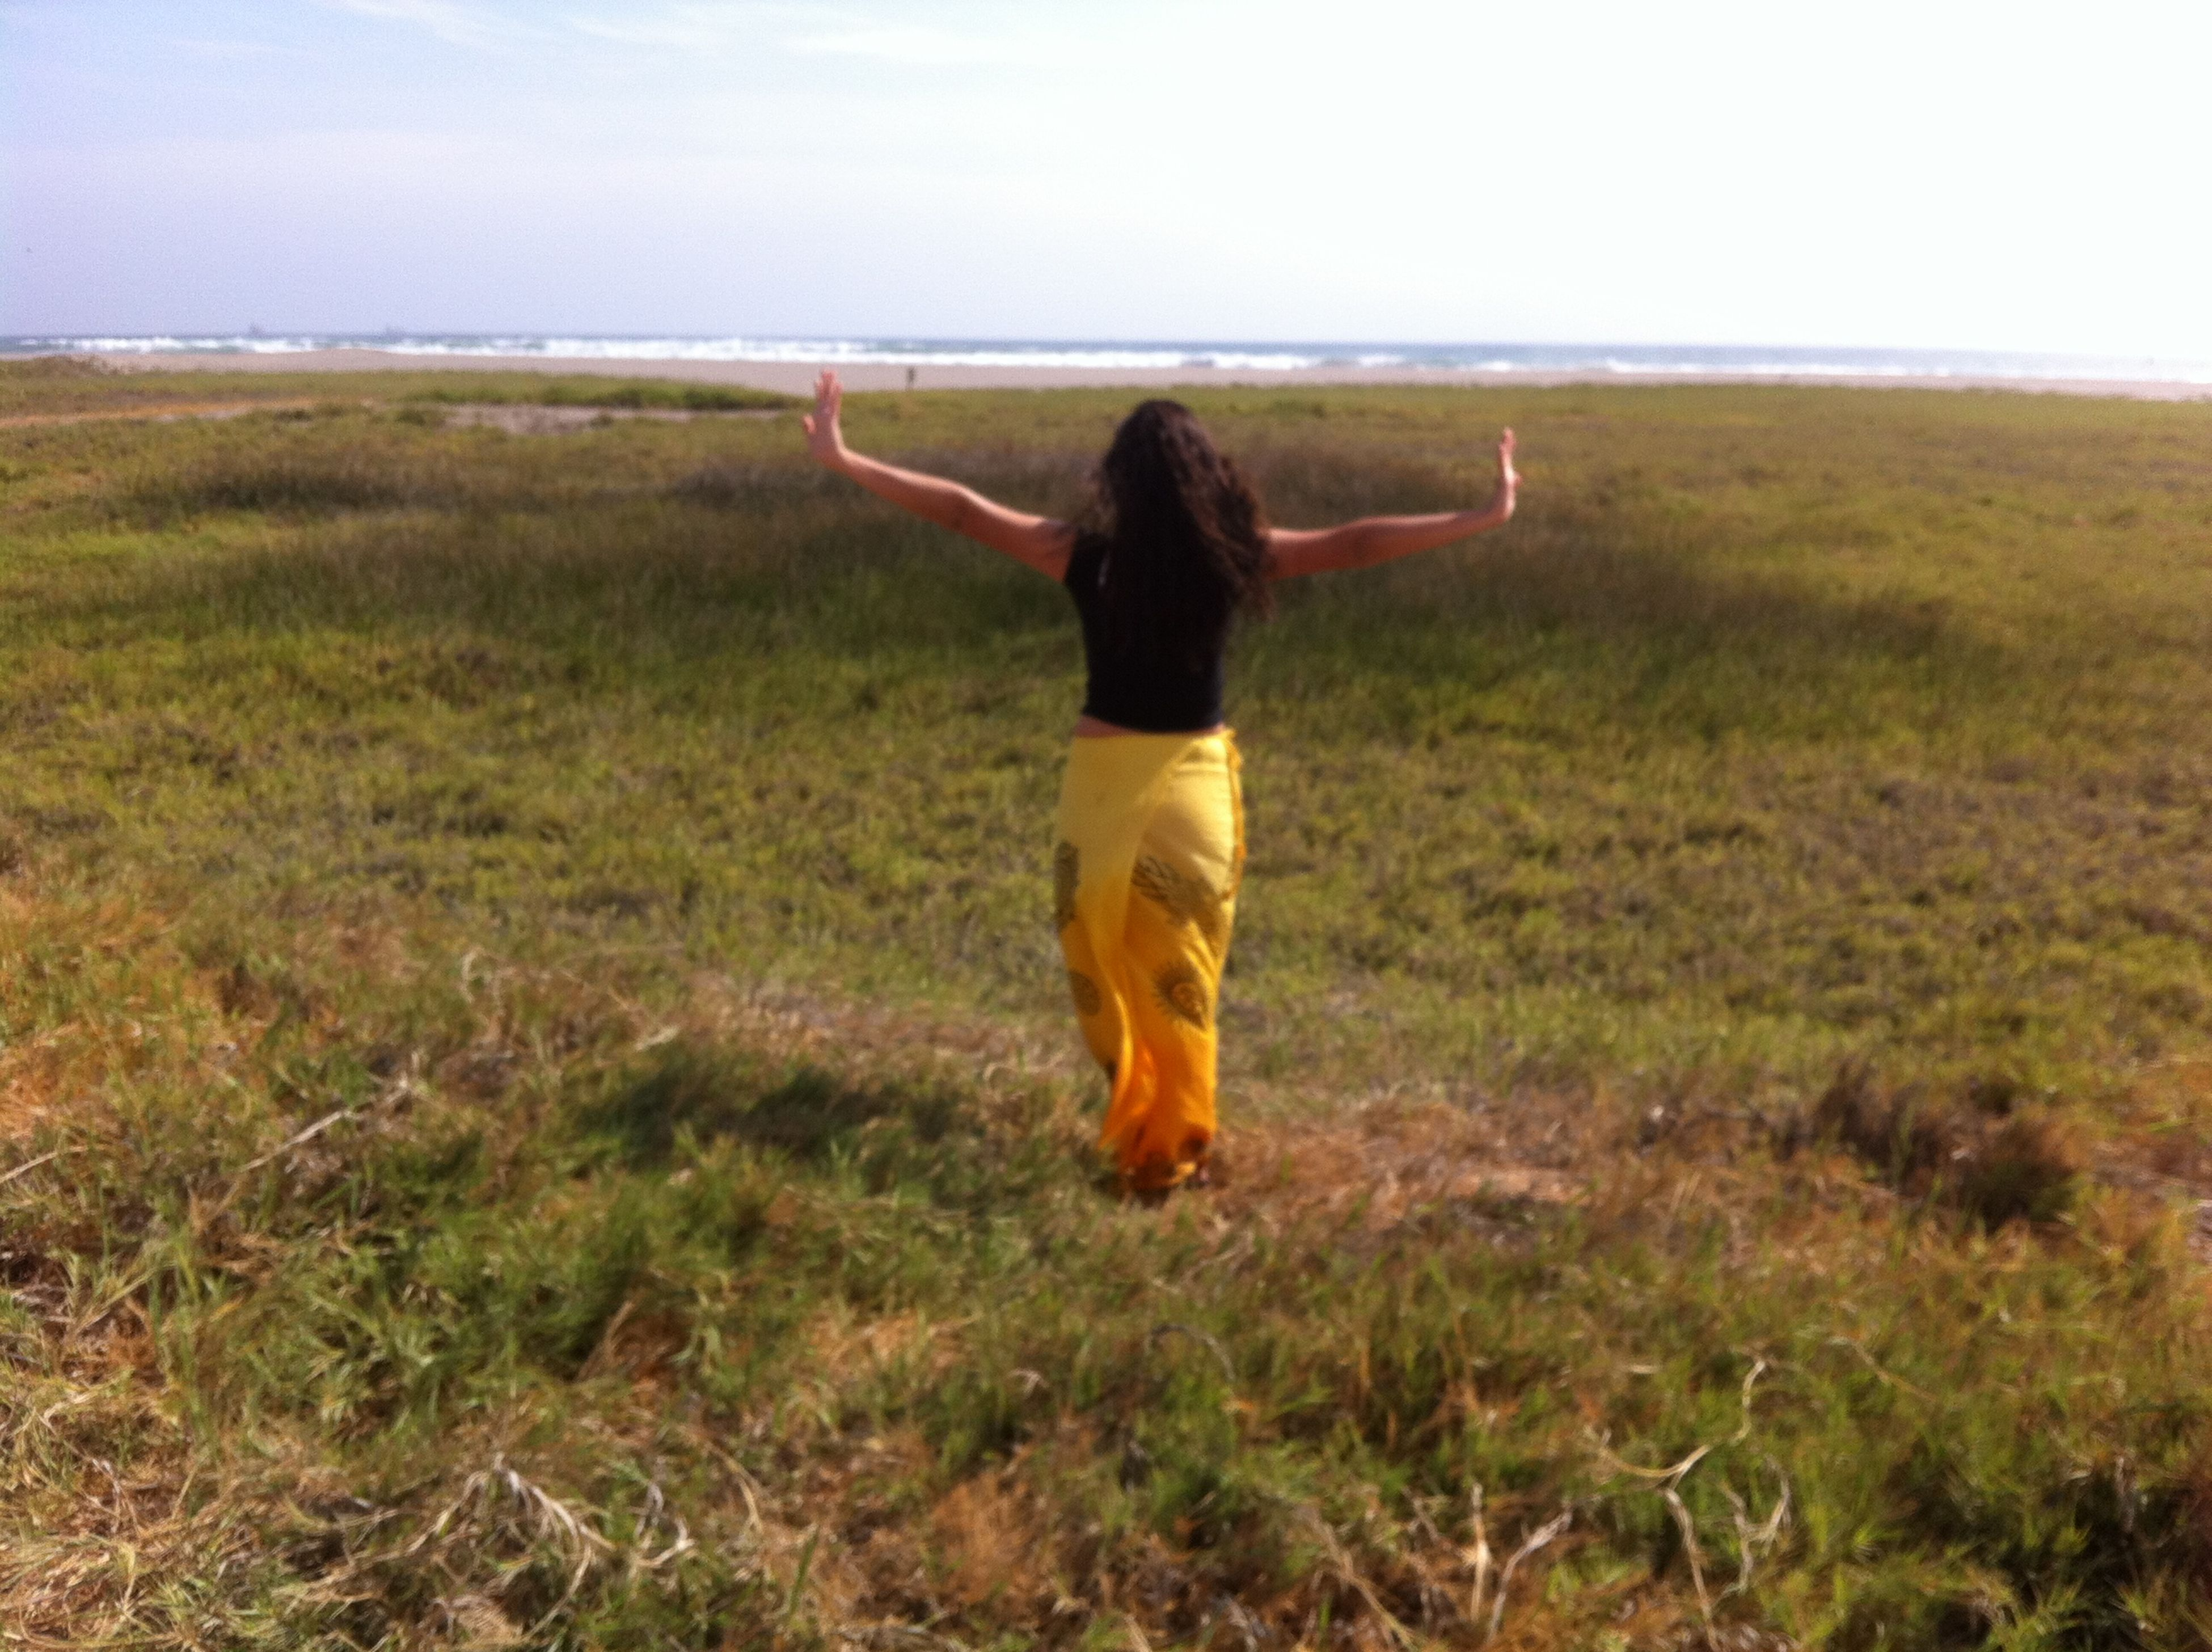 grass, full length, lifestyles, field, leisure activity, standing, rear view, grassy, casual clothing, sky, landscape, tranquil scene, tranquility, nature, scenics, beauty in nature, person, getting away from it all